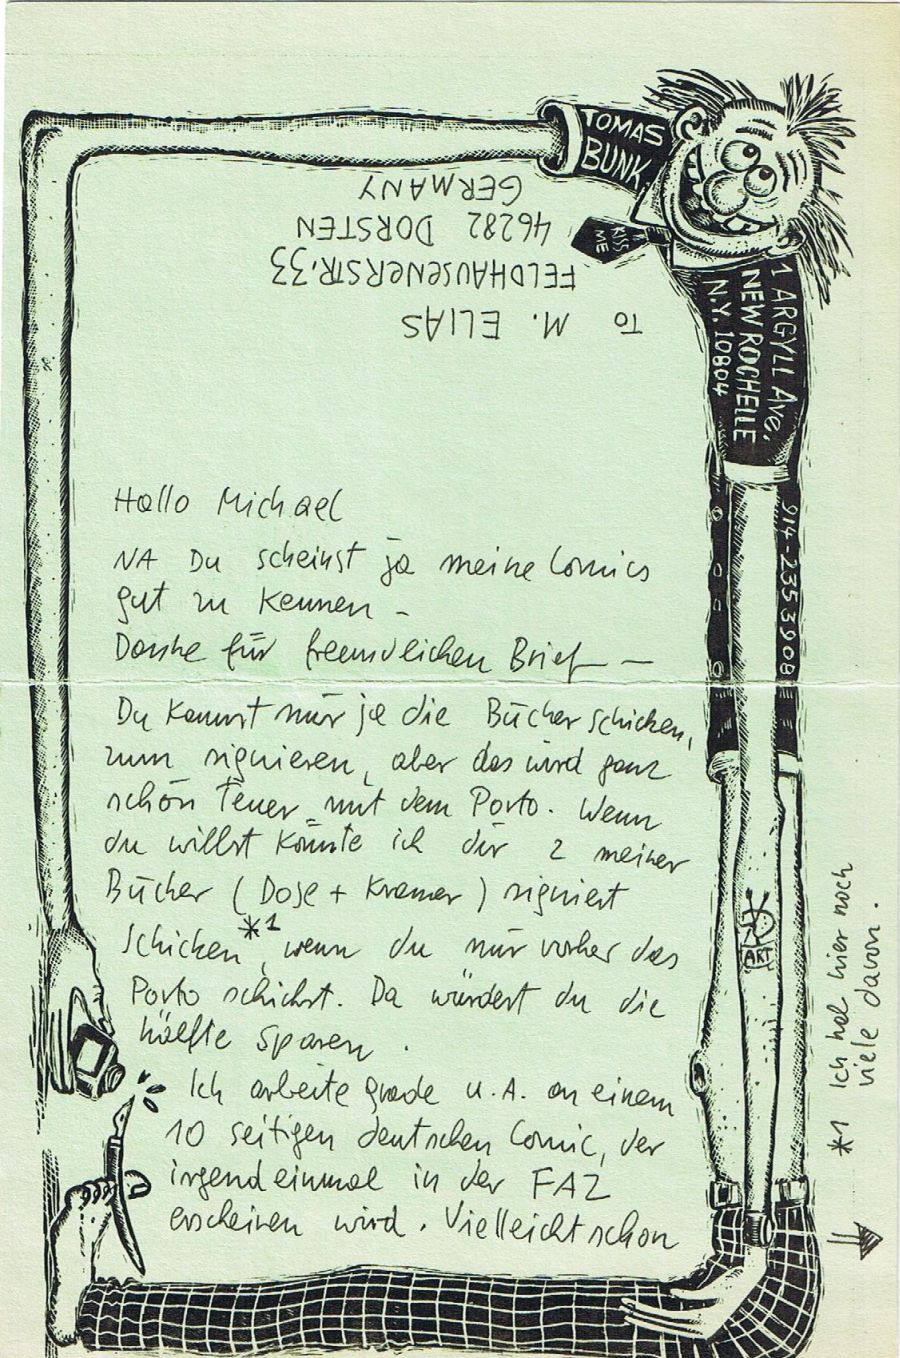 Letter from Tom Bunk • Germany